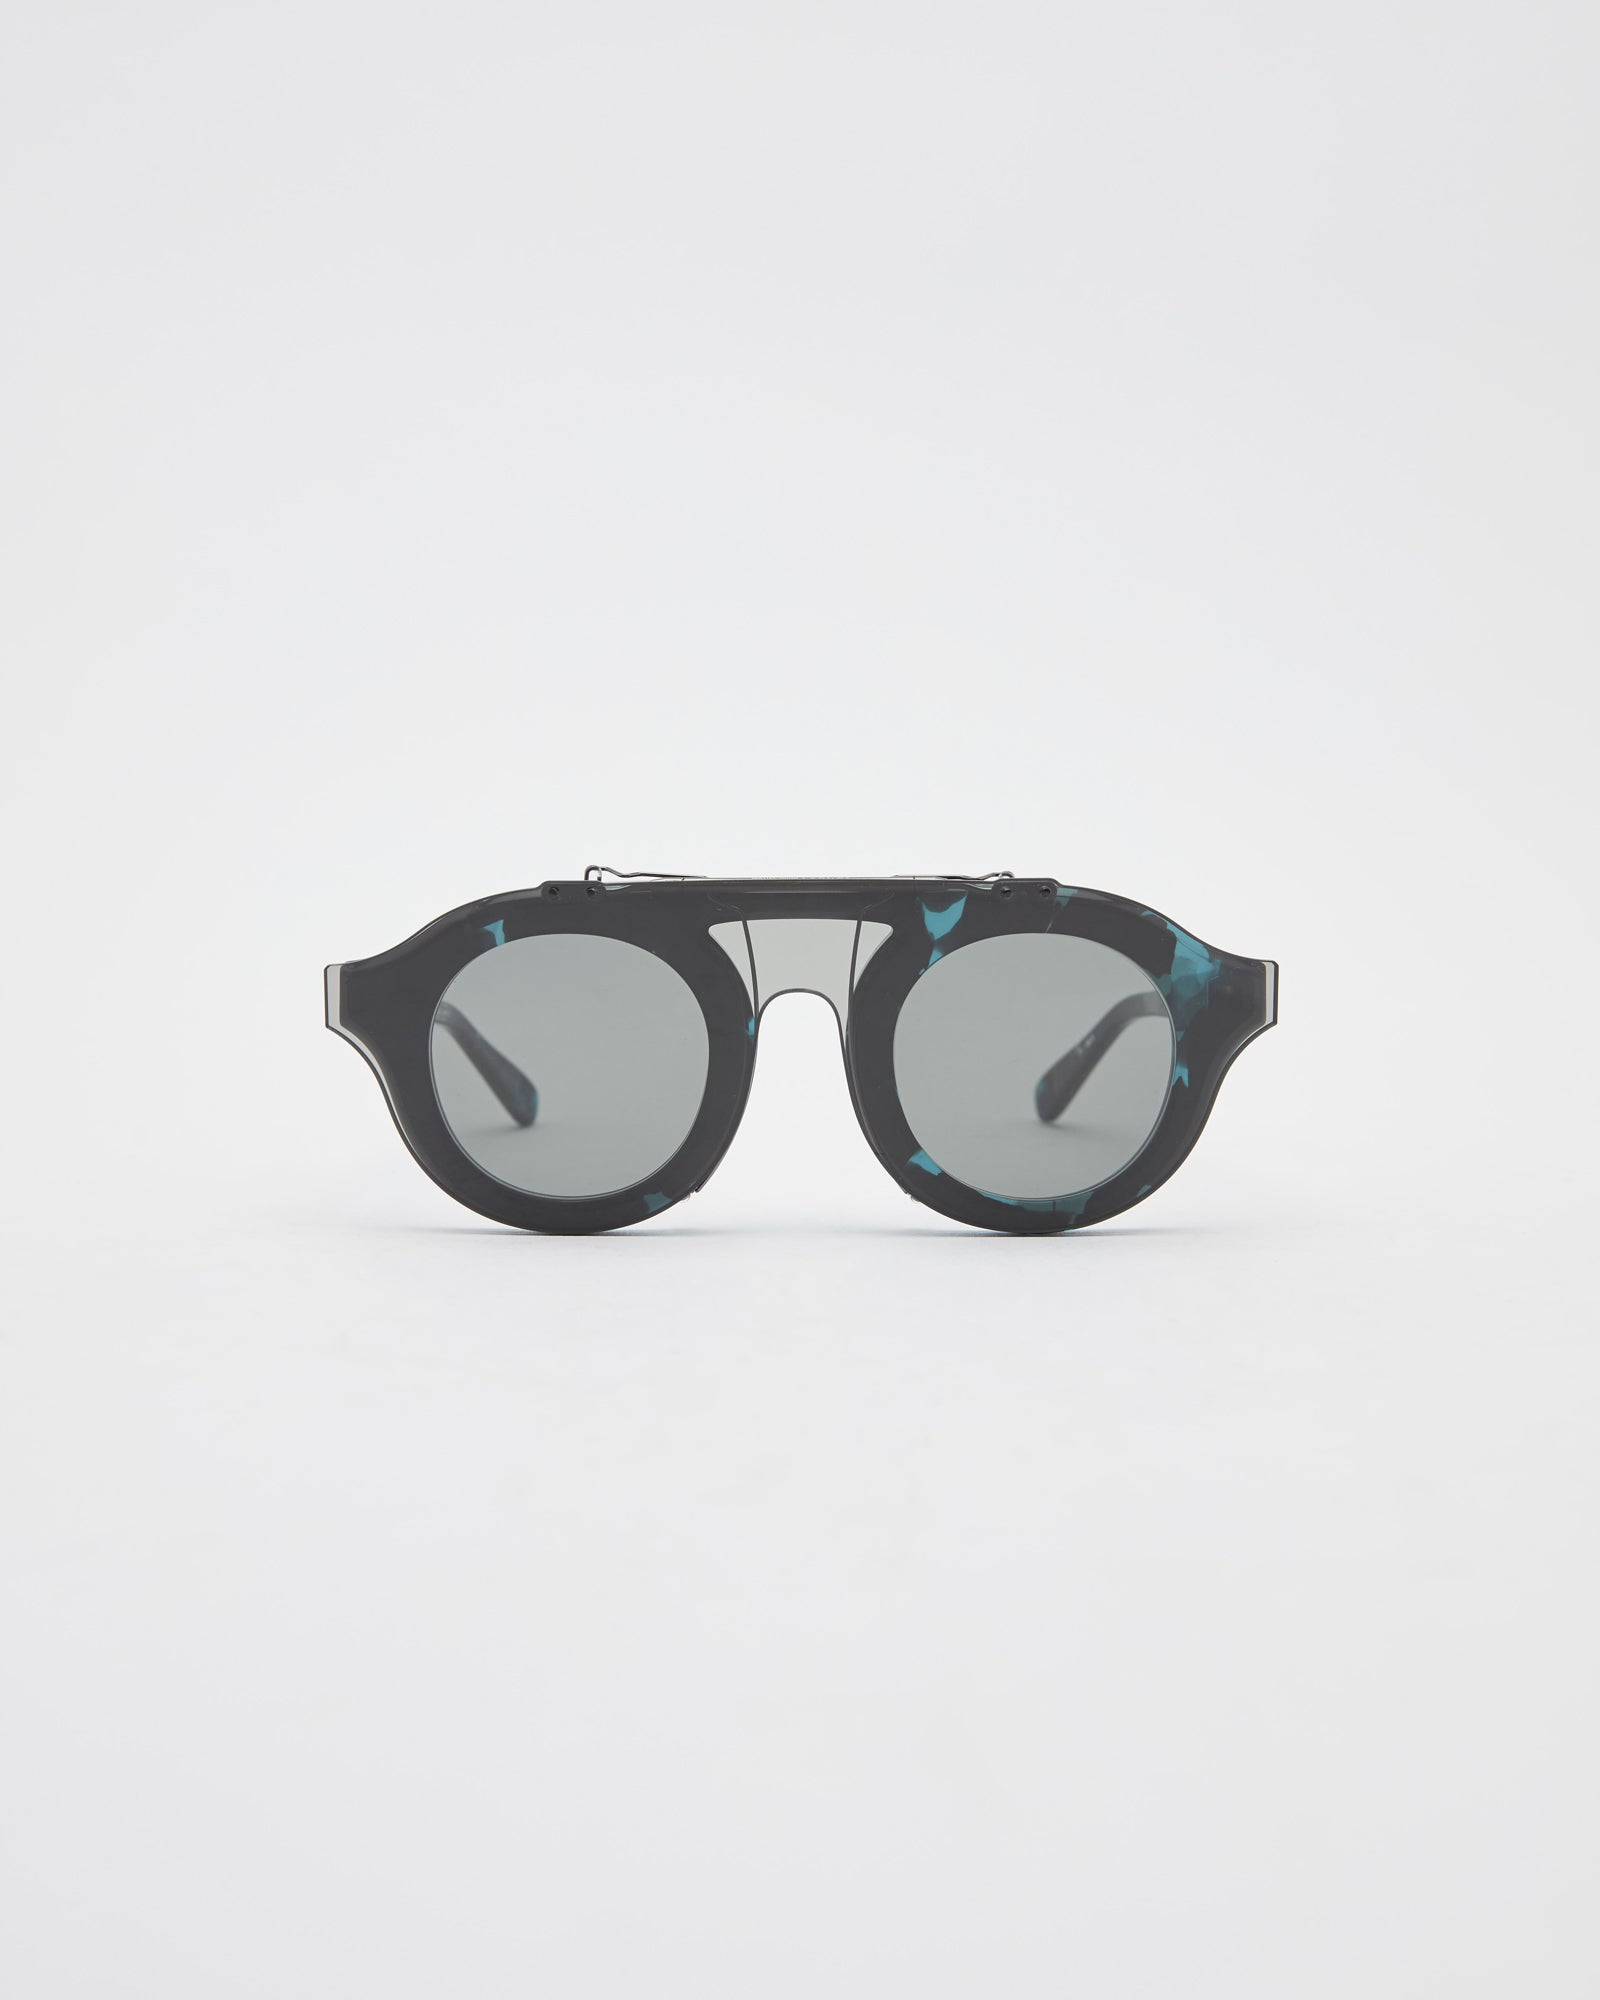 Native Sons x sacai Oppenheim Clip in Blue Turquoise